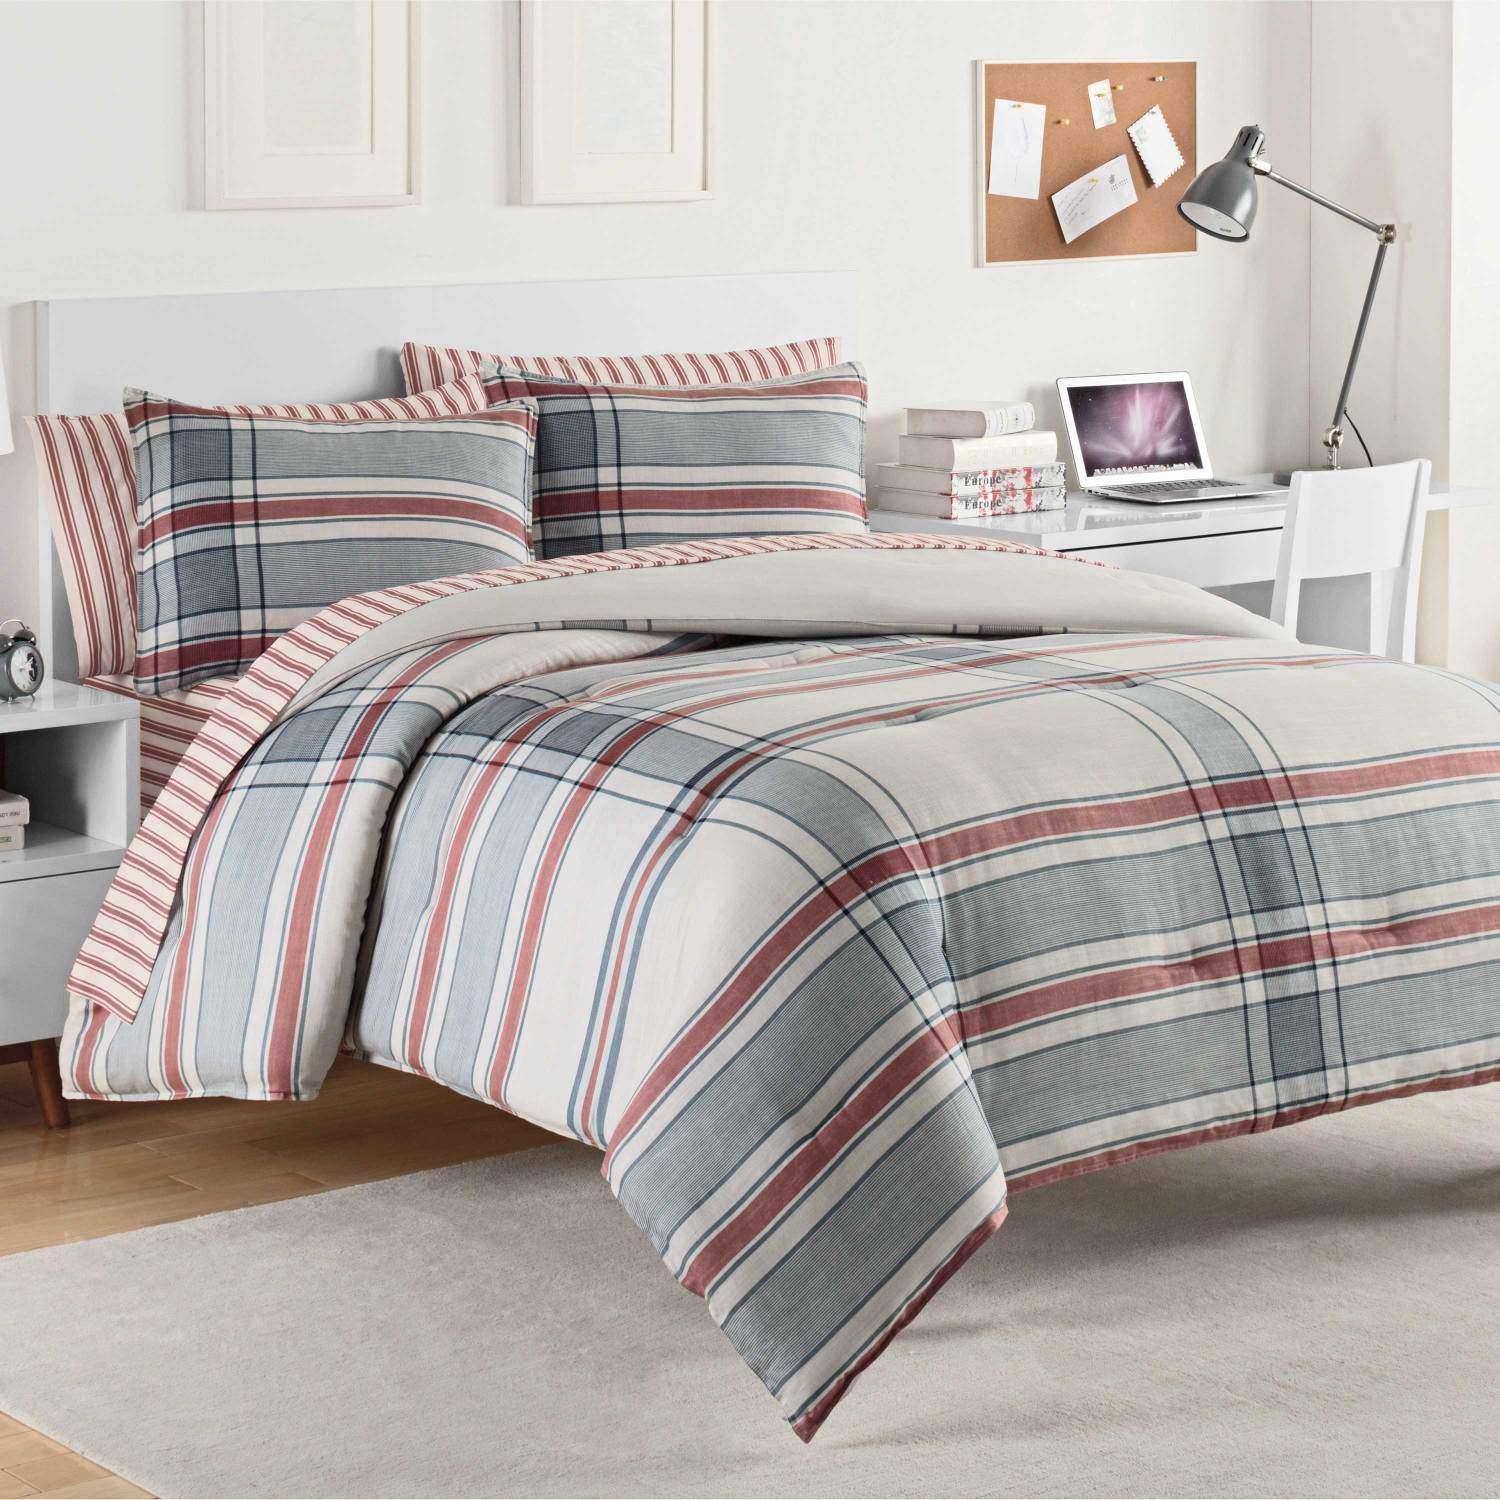 Hyde By Izod Bedding Beddingsuperstore Com